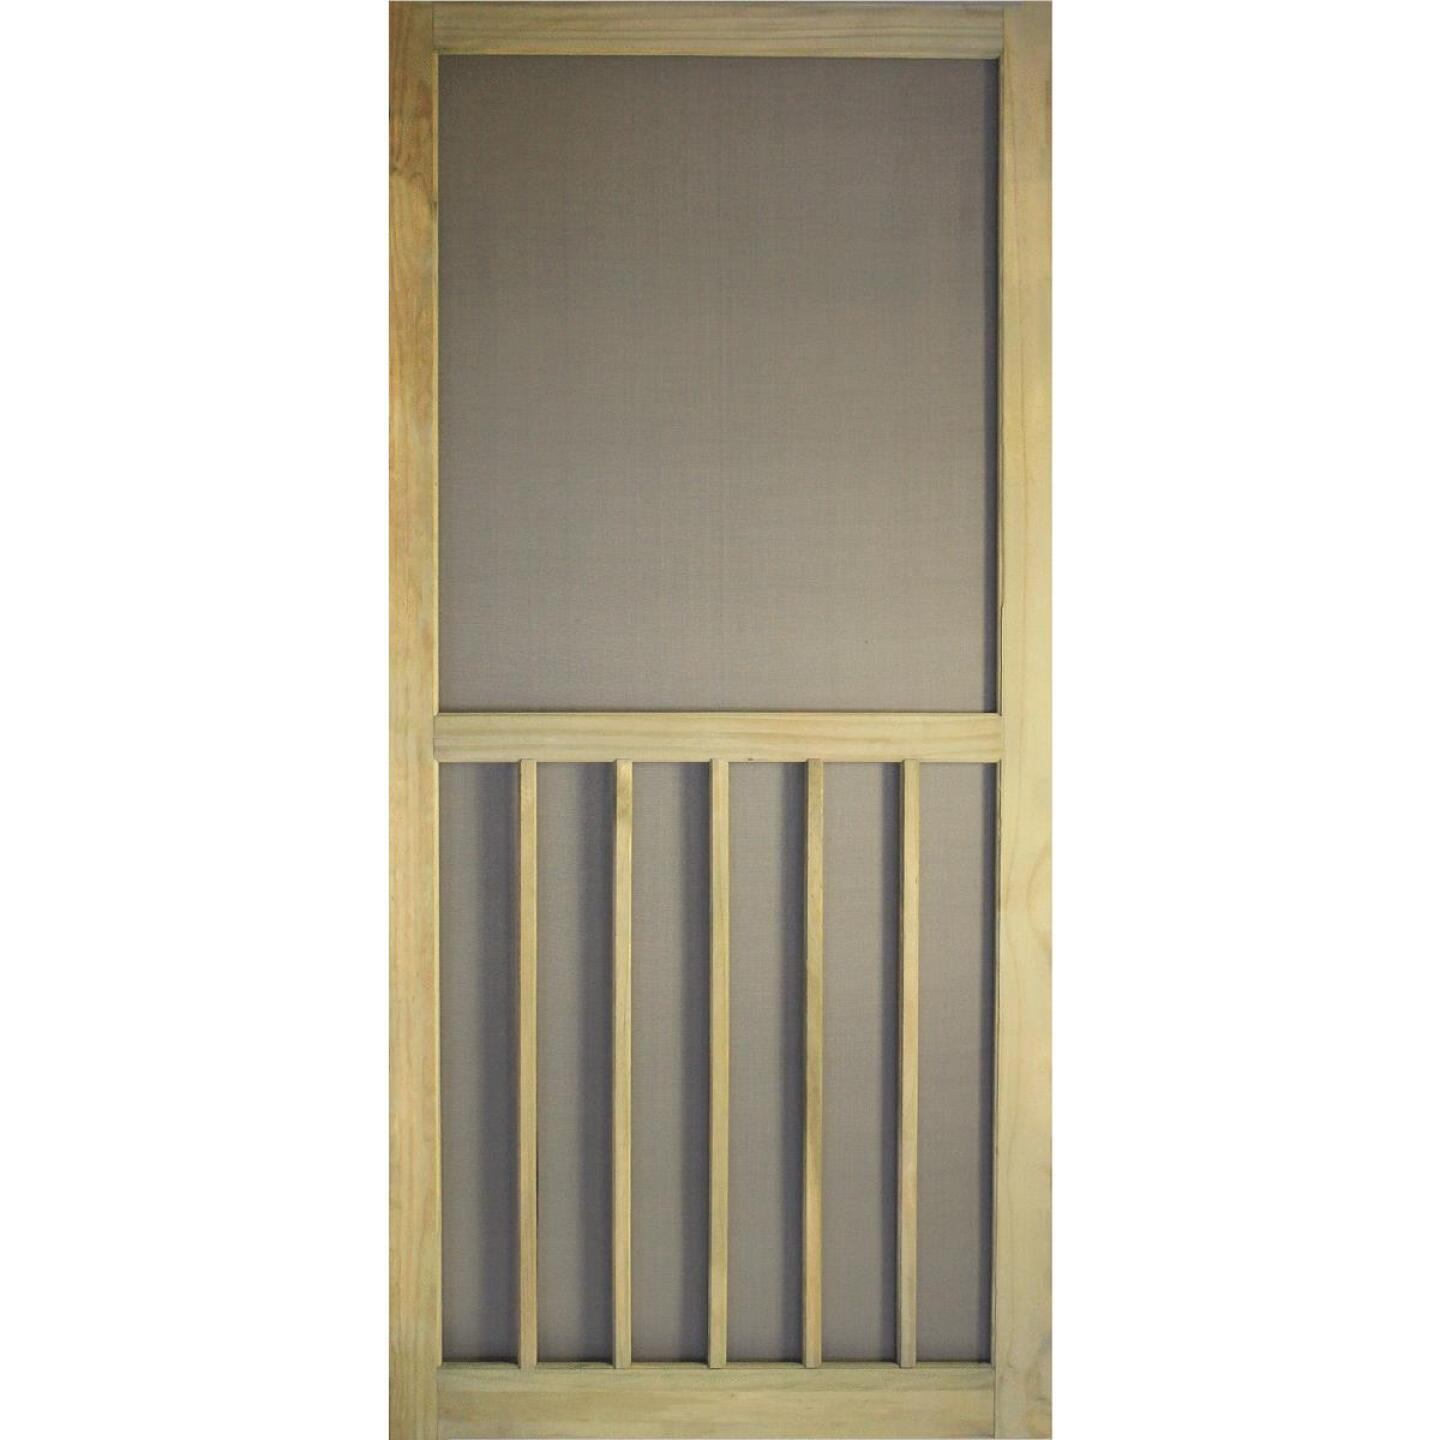 Snavely Kimberly Bay 36 In. W. x 80 In. H. x 1-1/8 In. Thick Stainable Natural ACQ Treated Solid Pine 5-Bar Screen Door Image 1